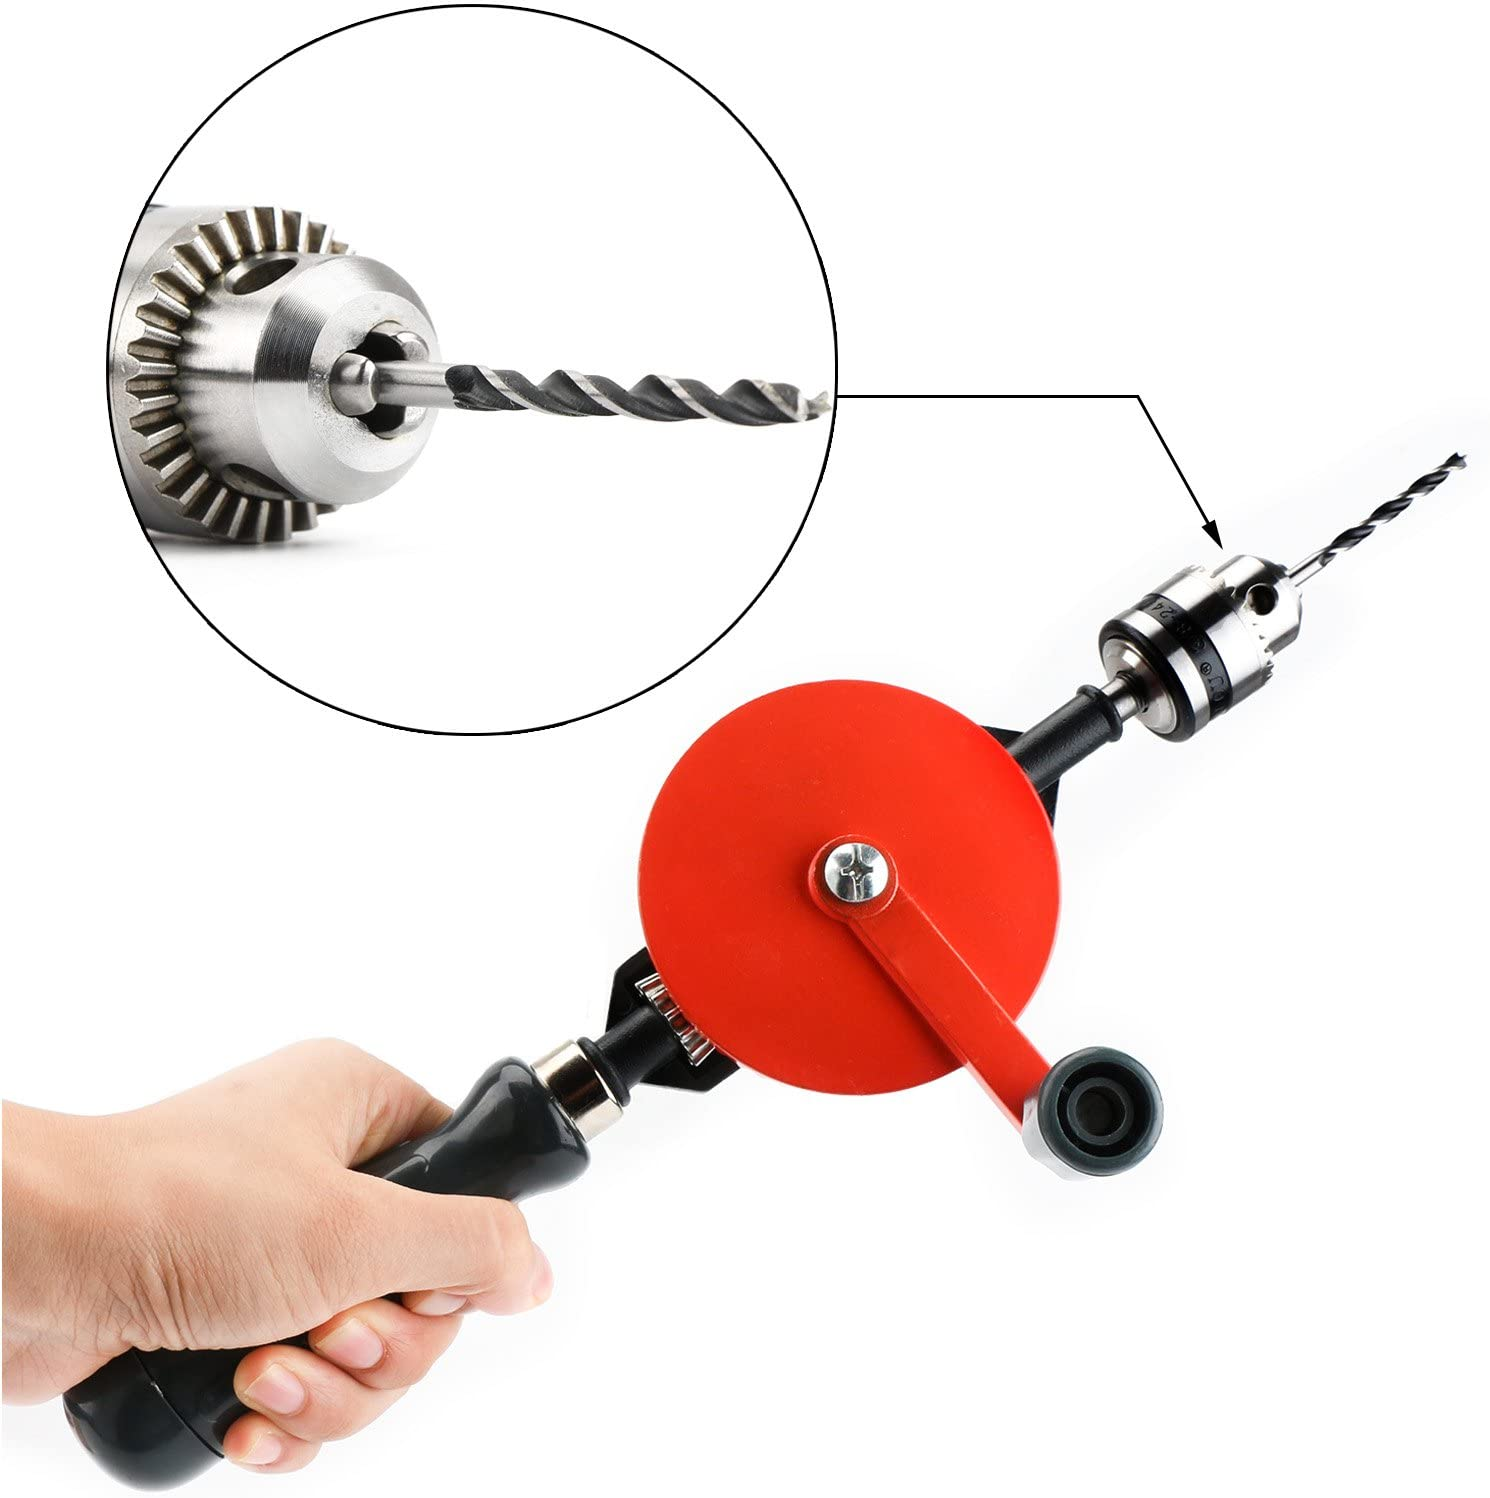 Hand Drill Manual, Hand Drill Rotary Cranking Handle 3/8 inch Chuck 3 Jaw